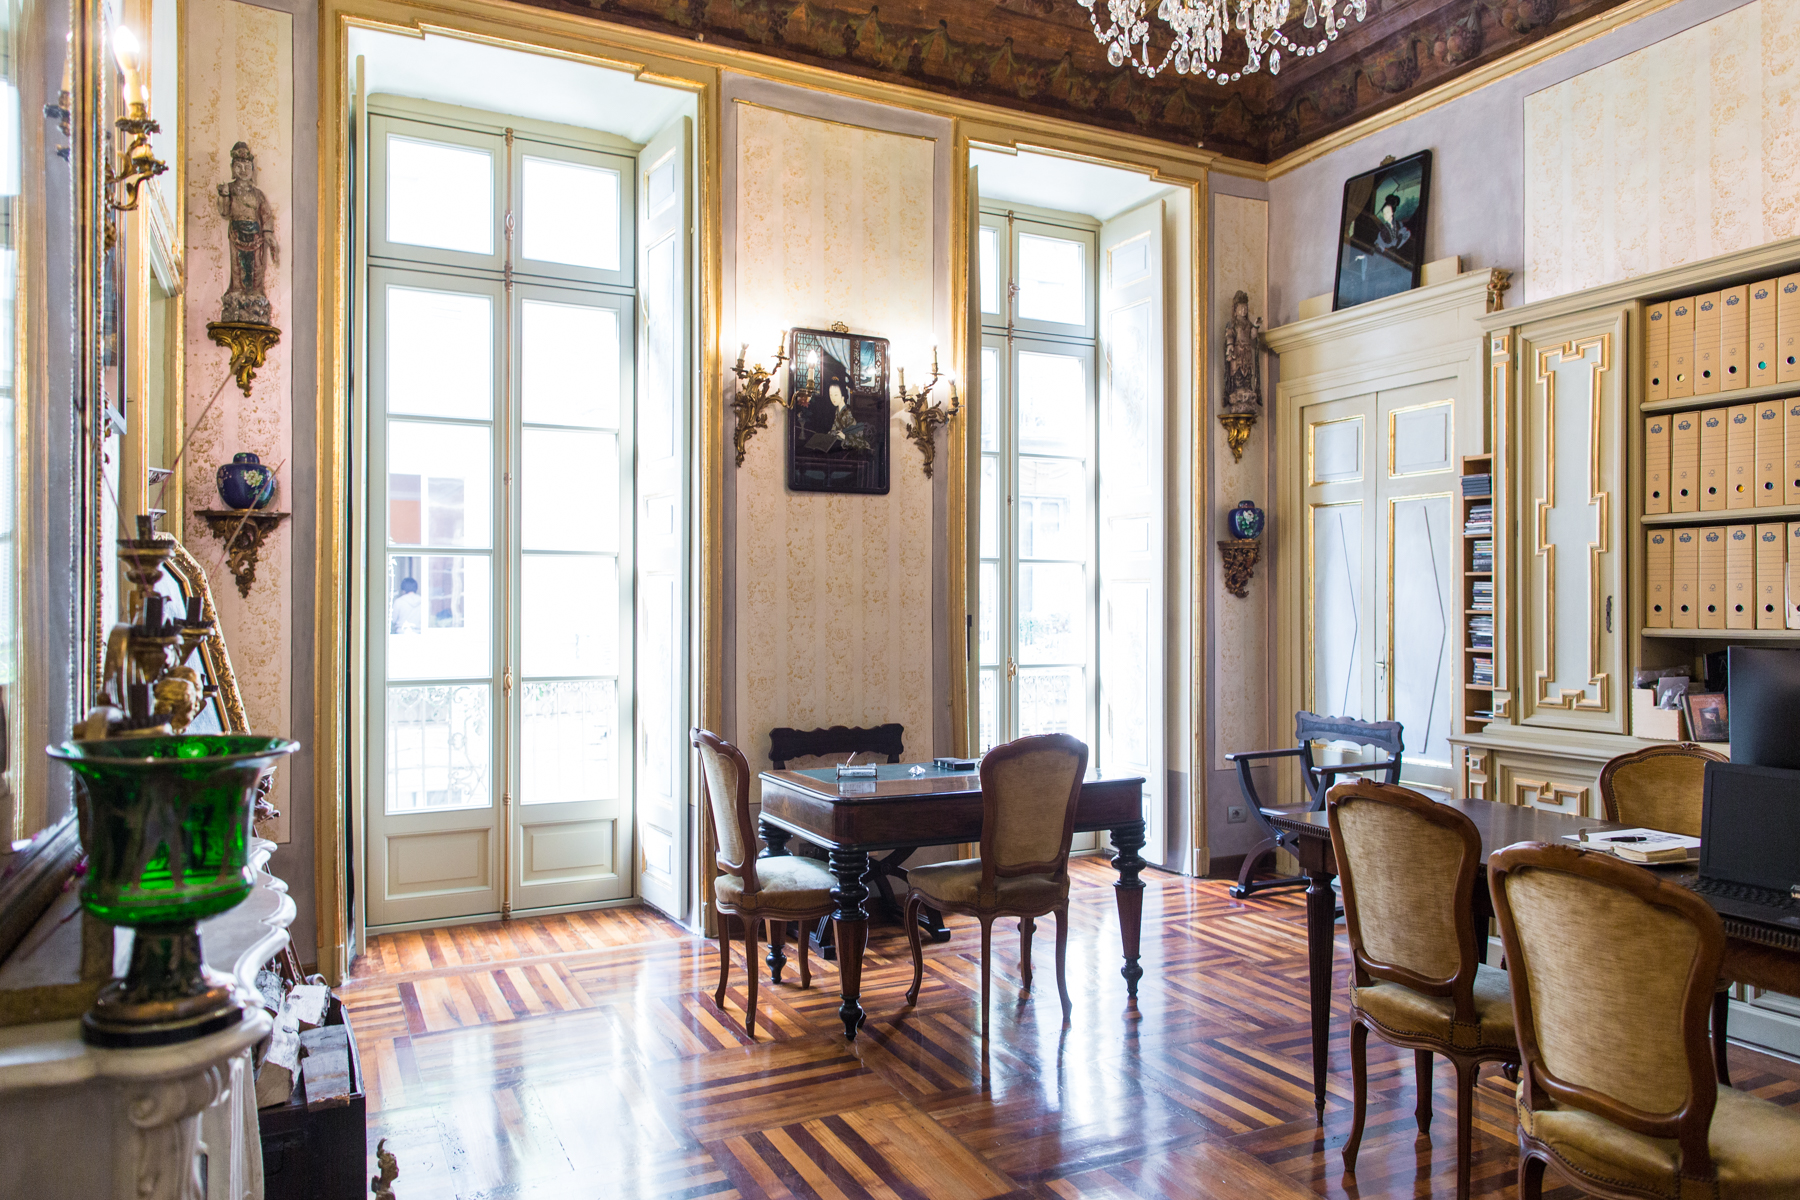 Additional photo for property listing at Elegant and fascinating apartment in the historical center of Turin Via Conte Verde 1 Turin, Turin 10122 Italie